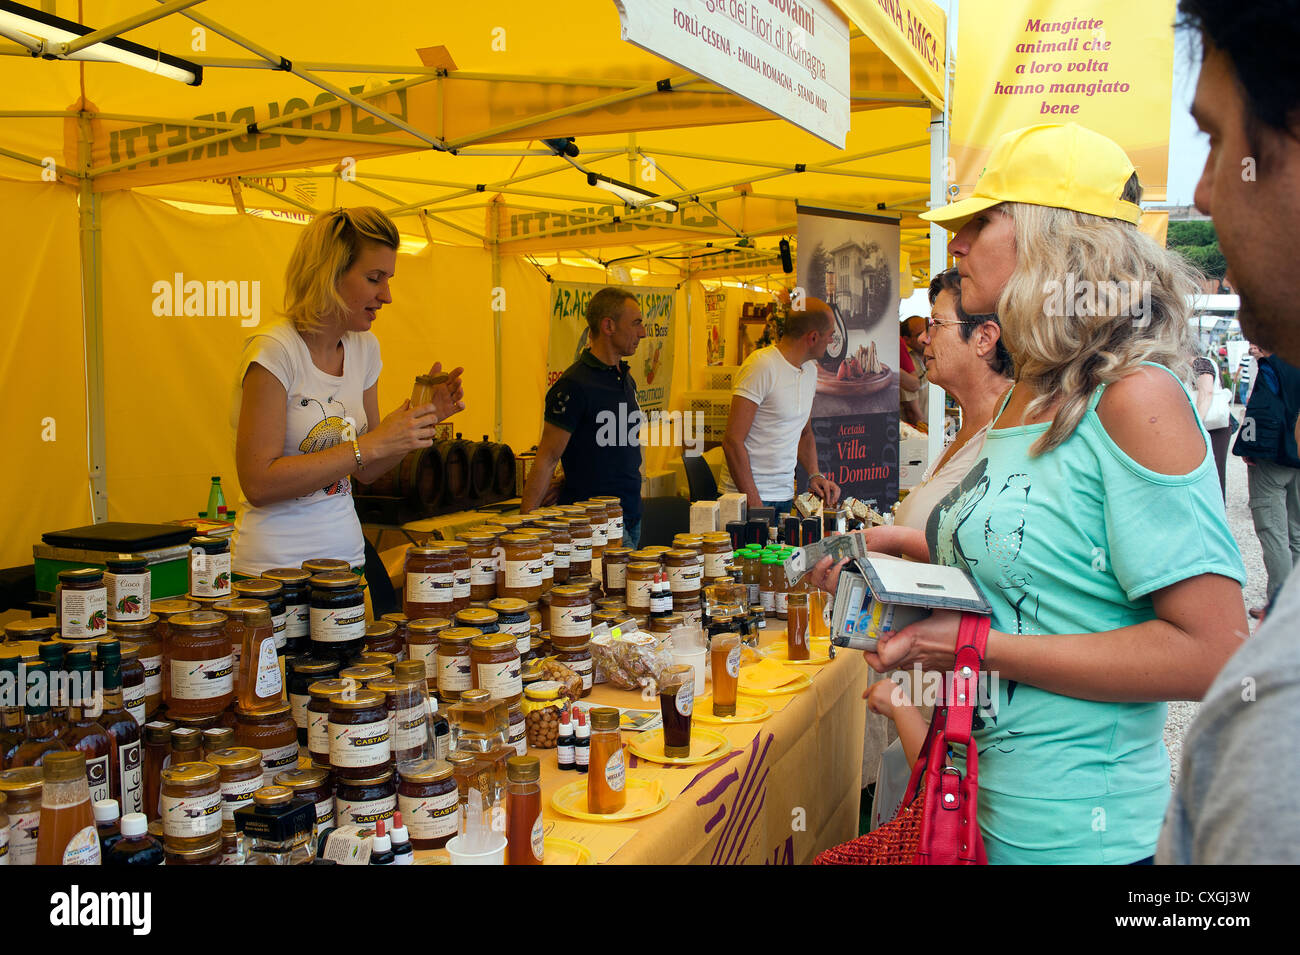 Farmers' Market at Circo Massimo, Rome, Italy. - Stock Image